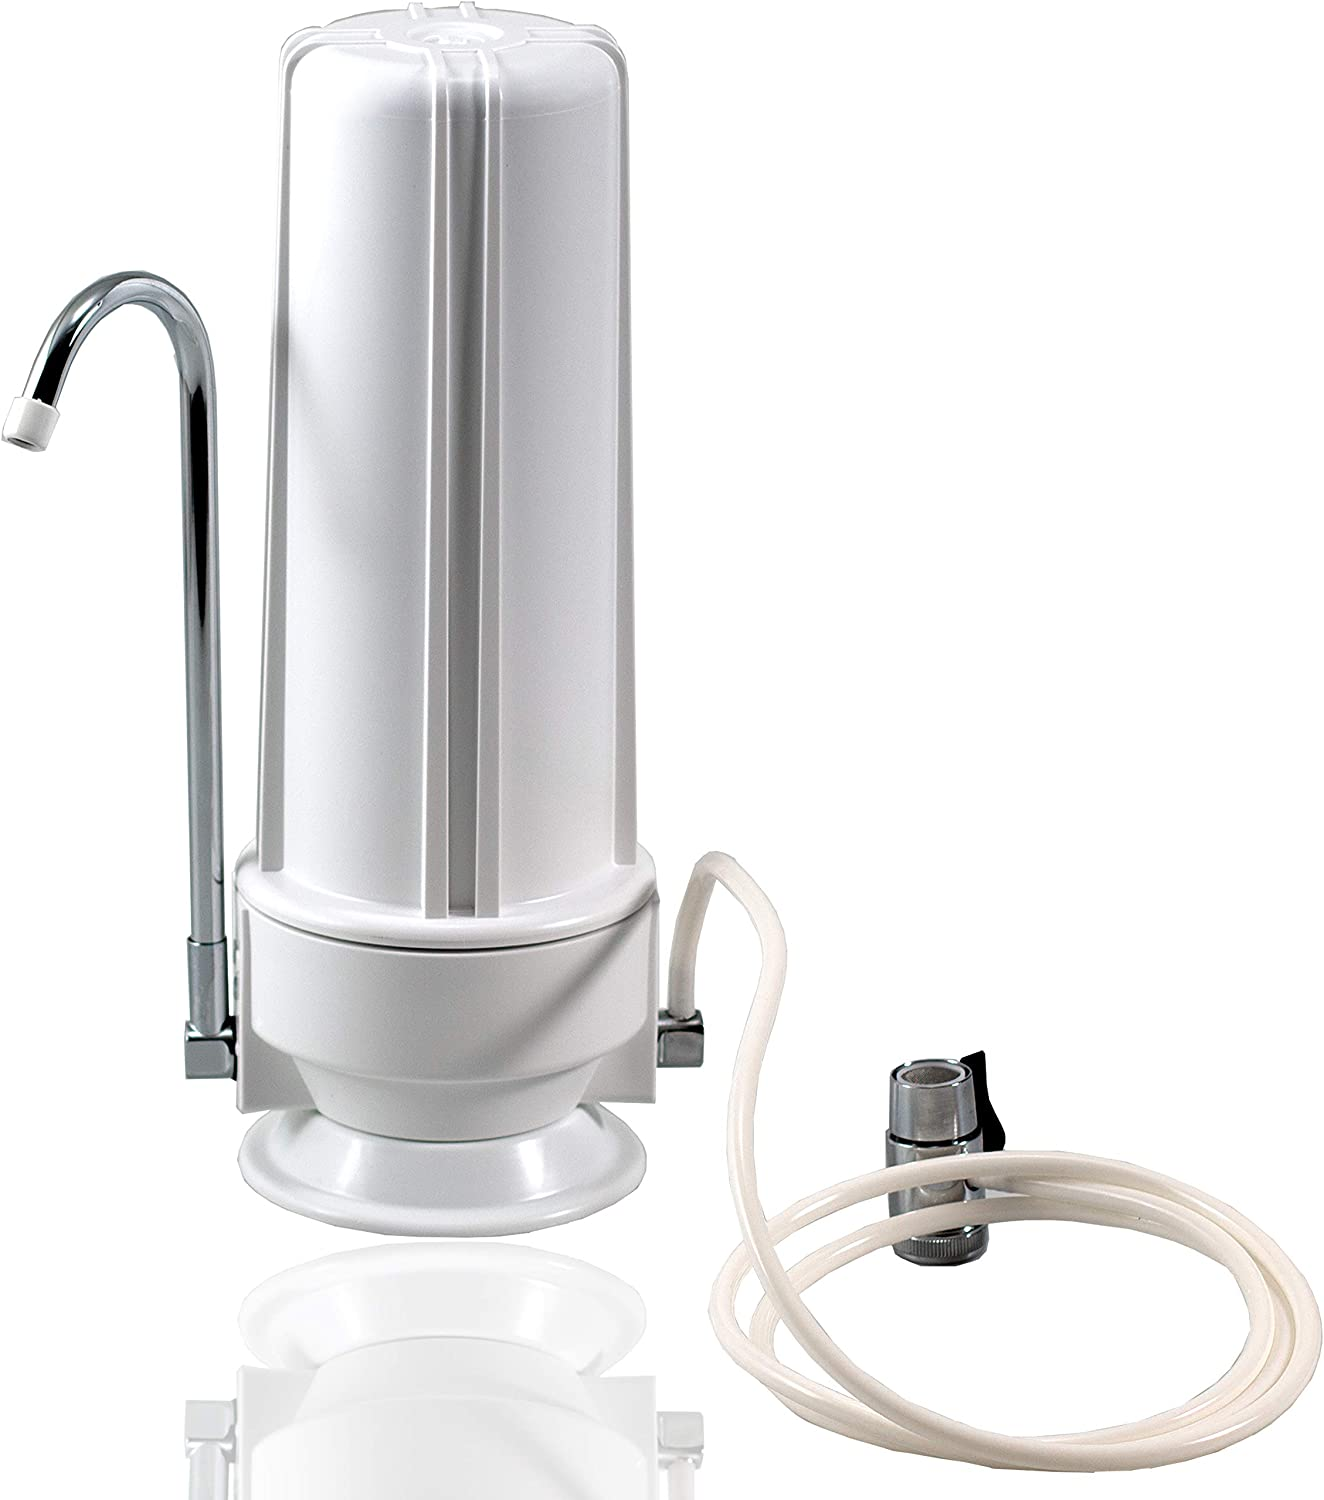 NU Aqua Platinum Series Countertop Water Filter